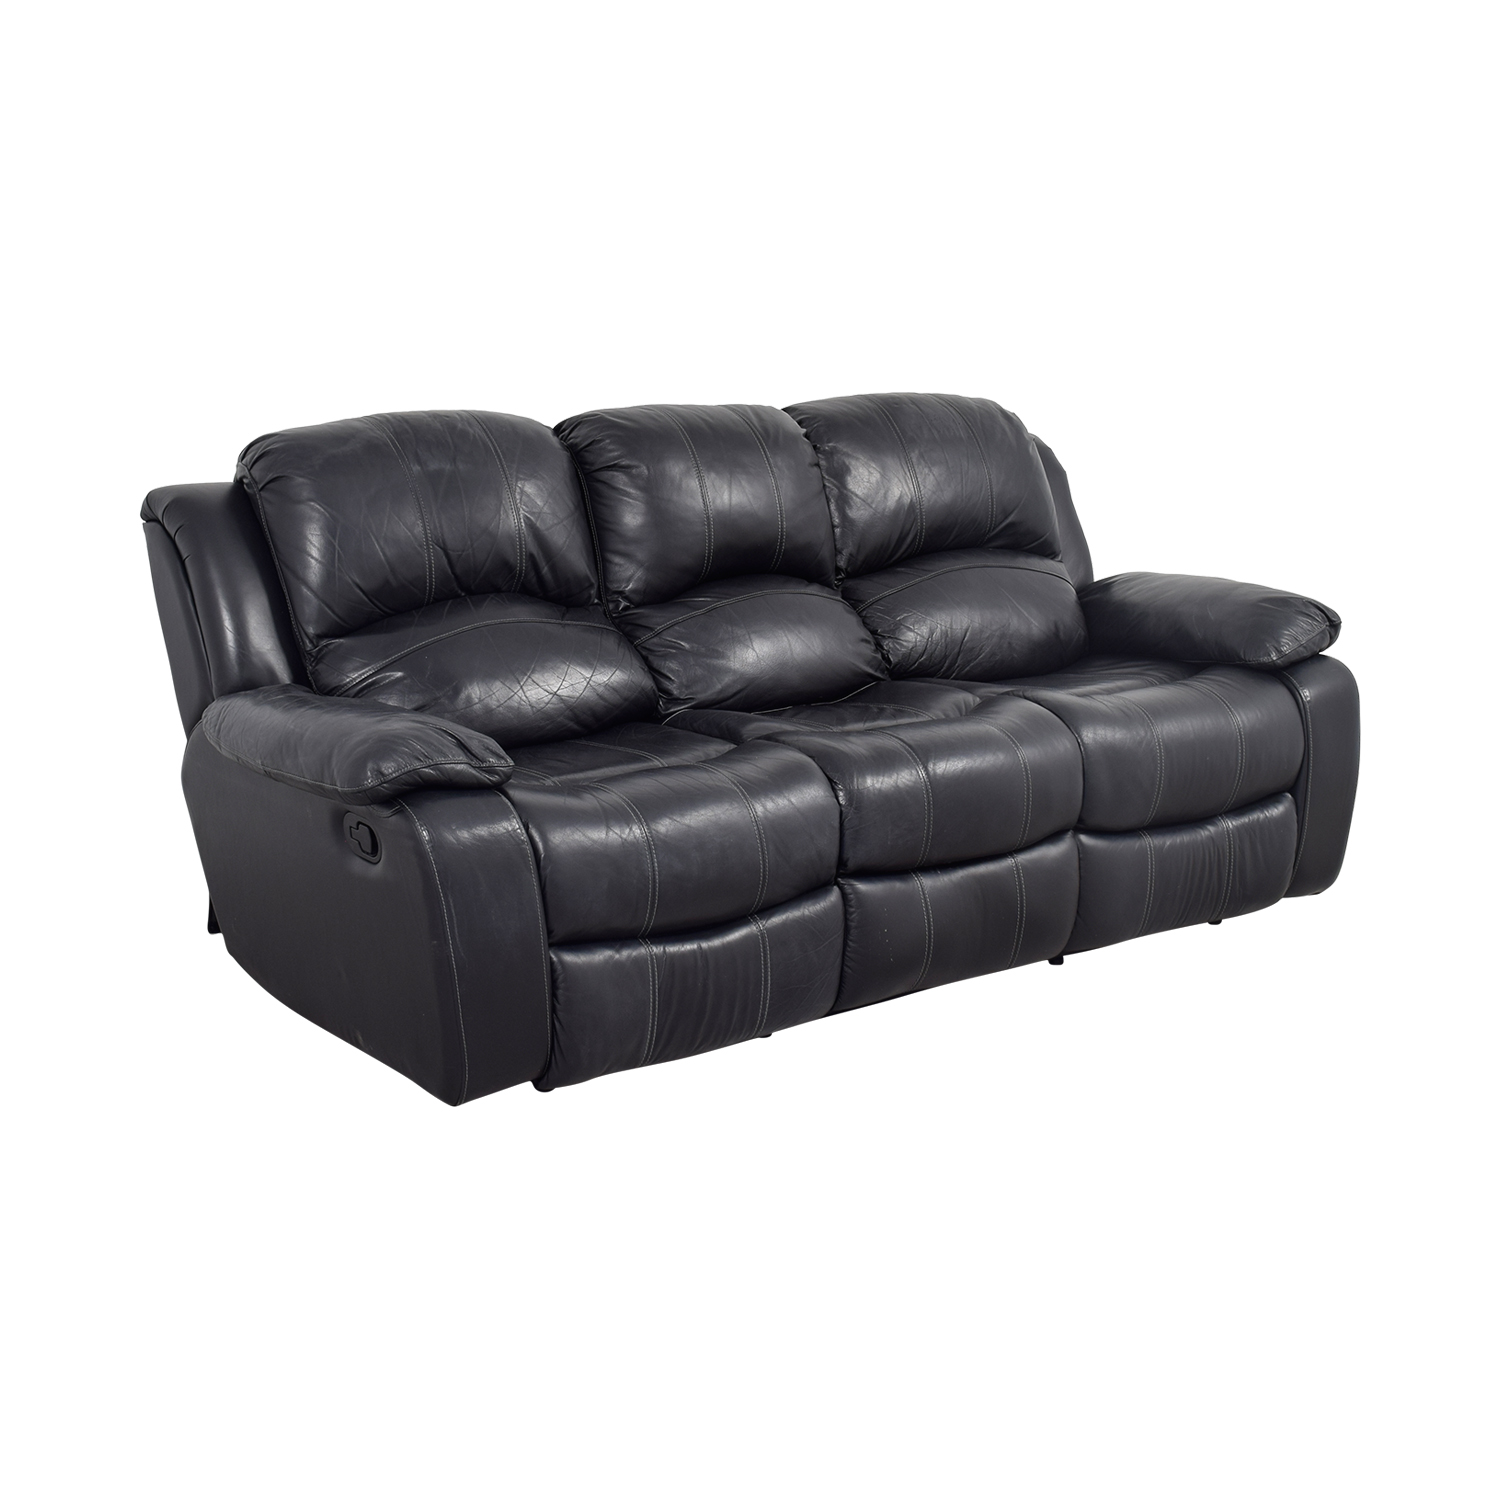 Off Black Leather Reclining Sofa Sofas